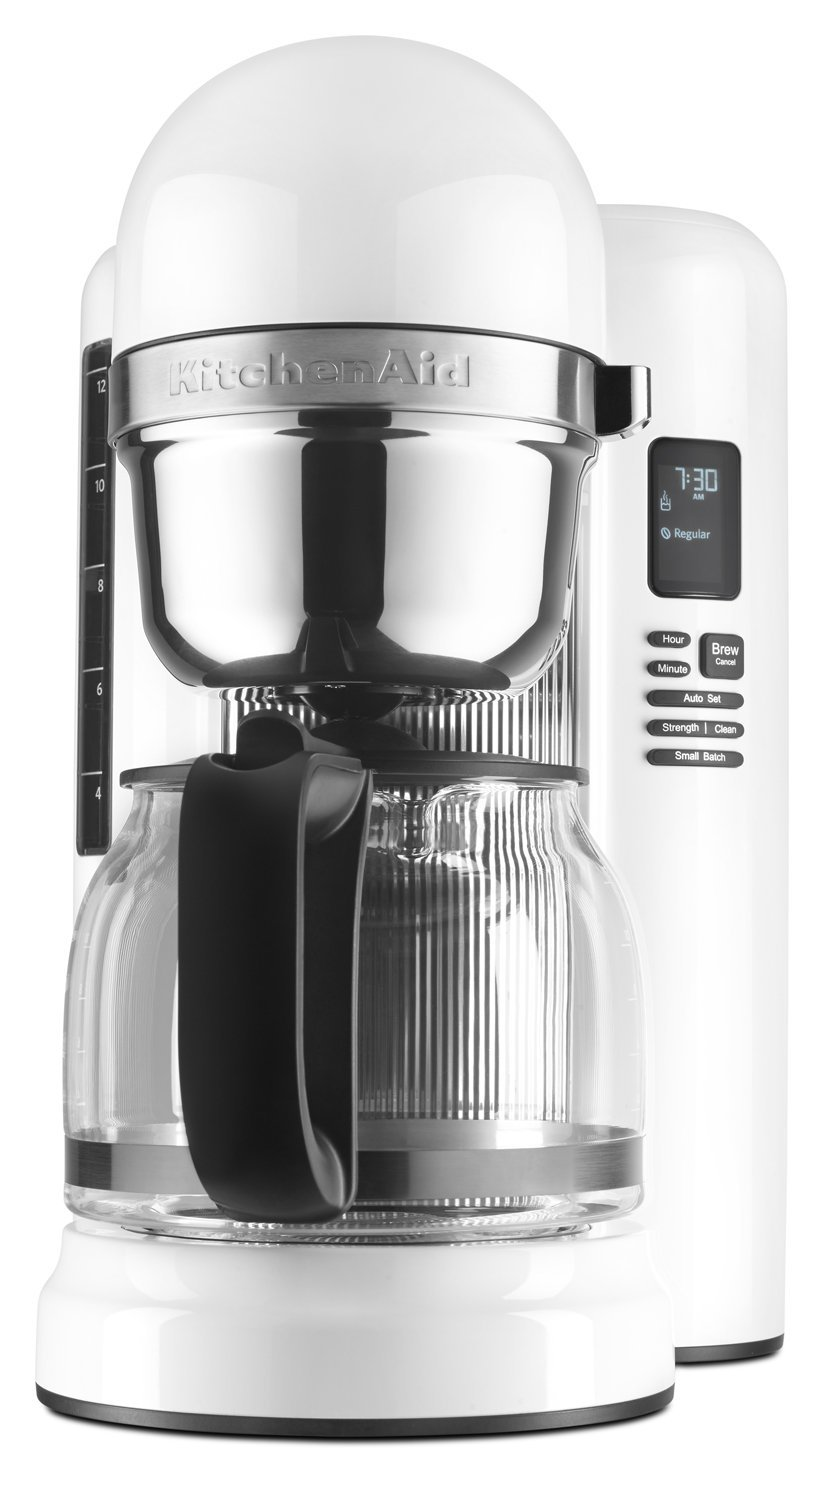 Office Coffee Machines for Your Small Business - KitchenAid Coffee Maker with One-Touch Brewing